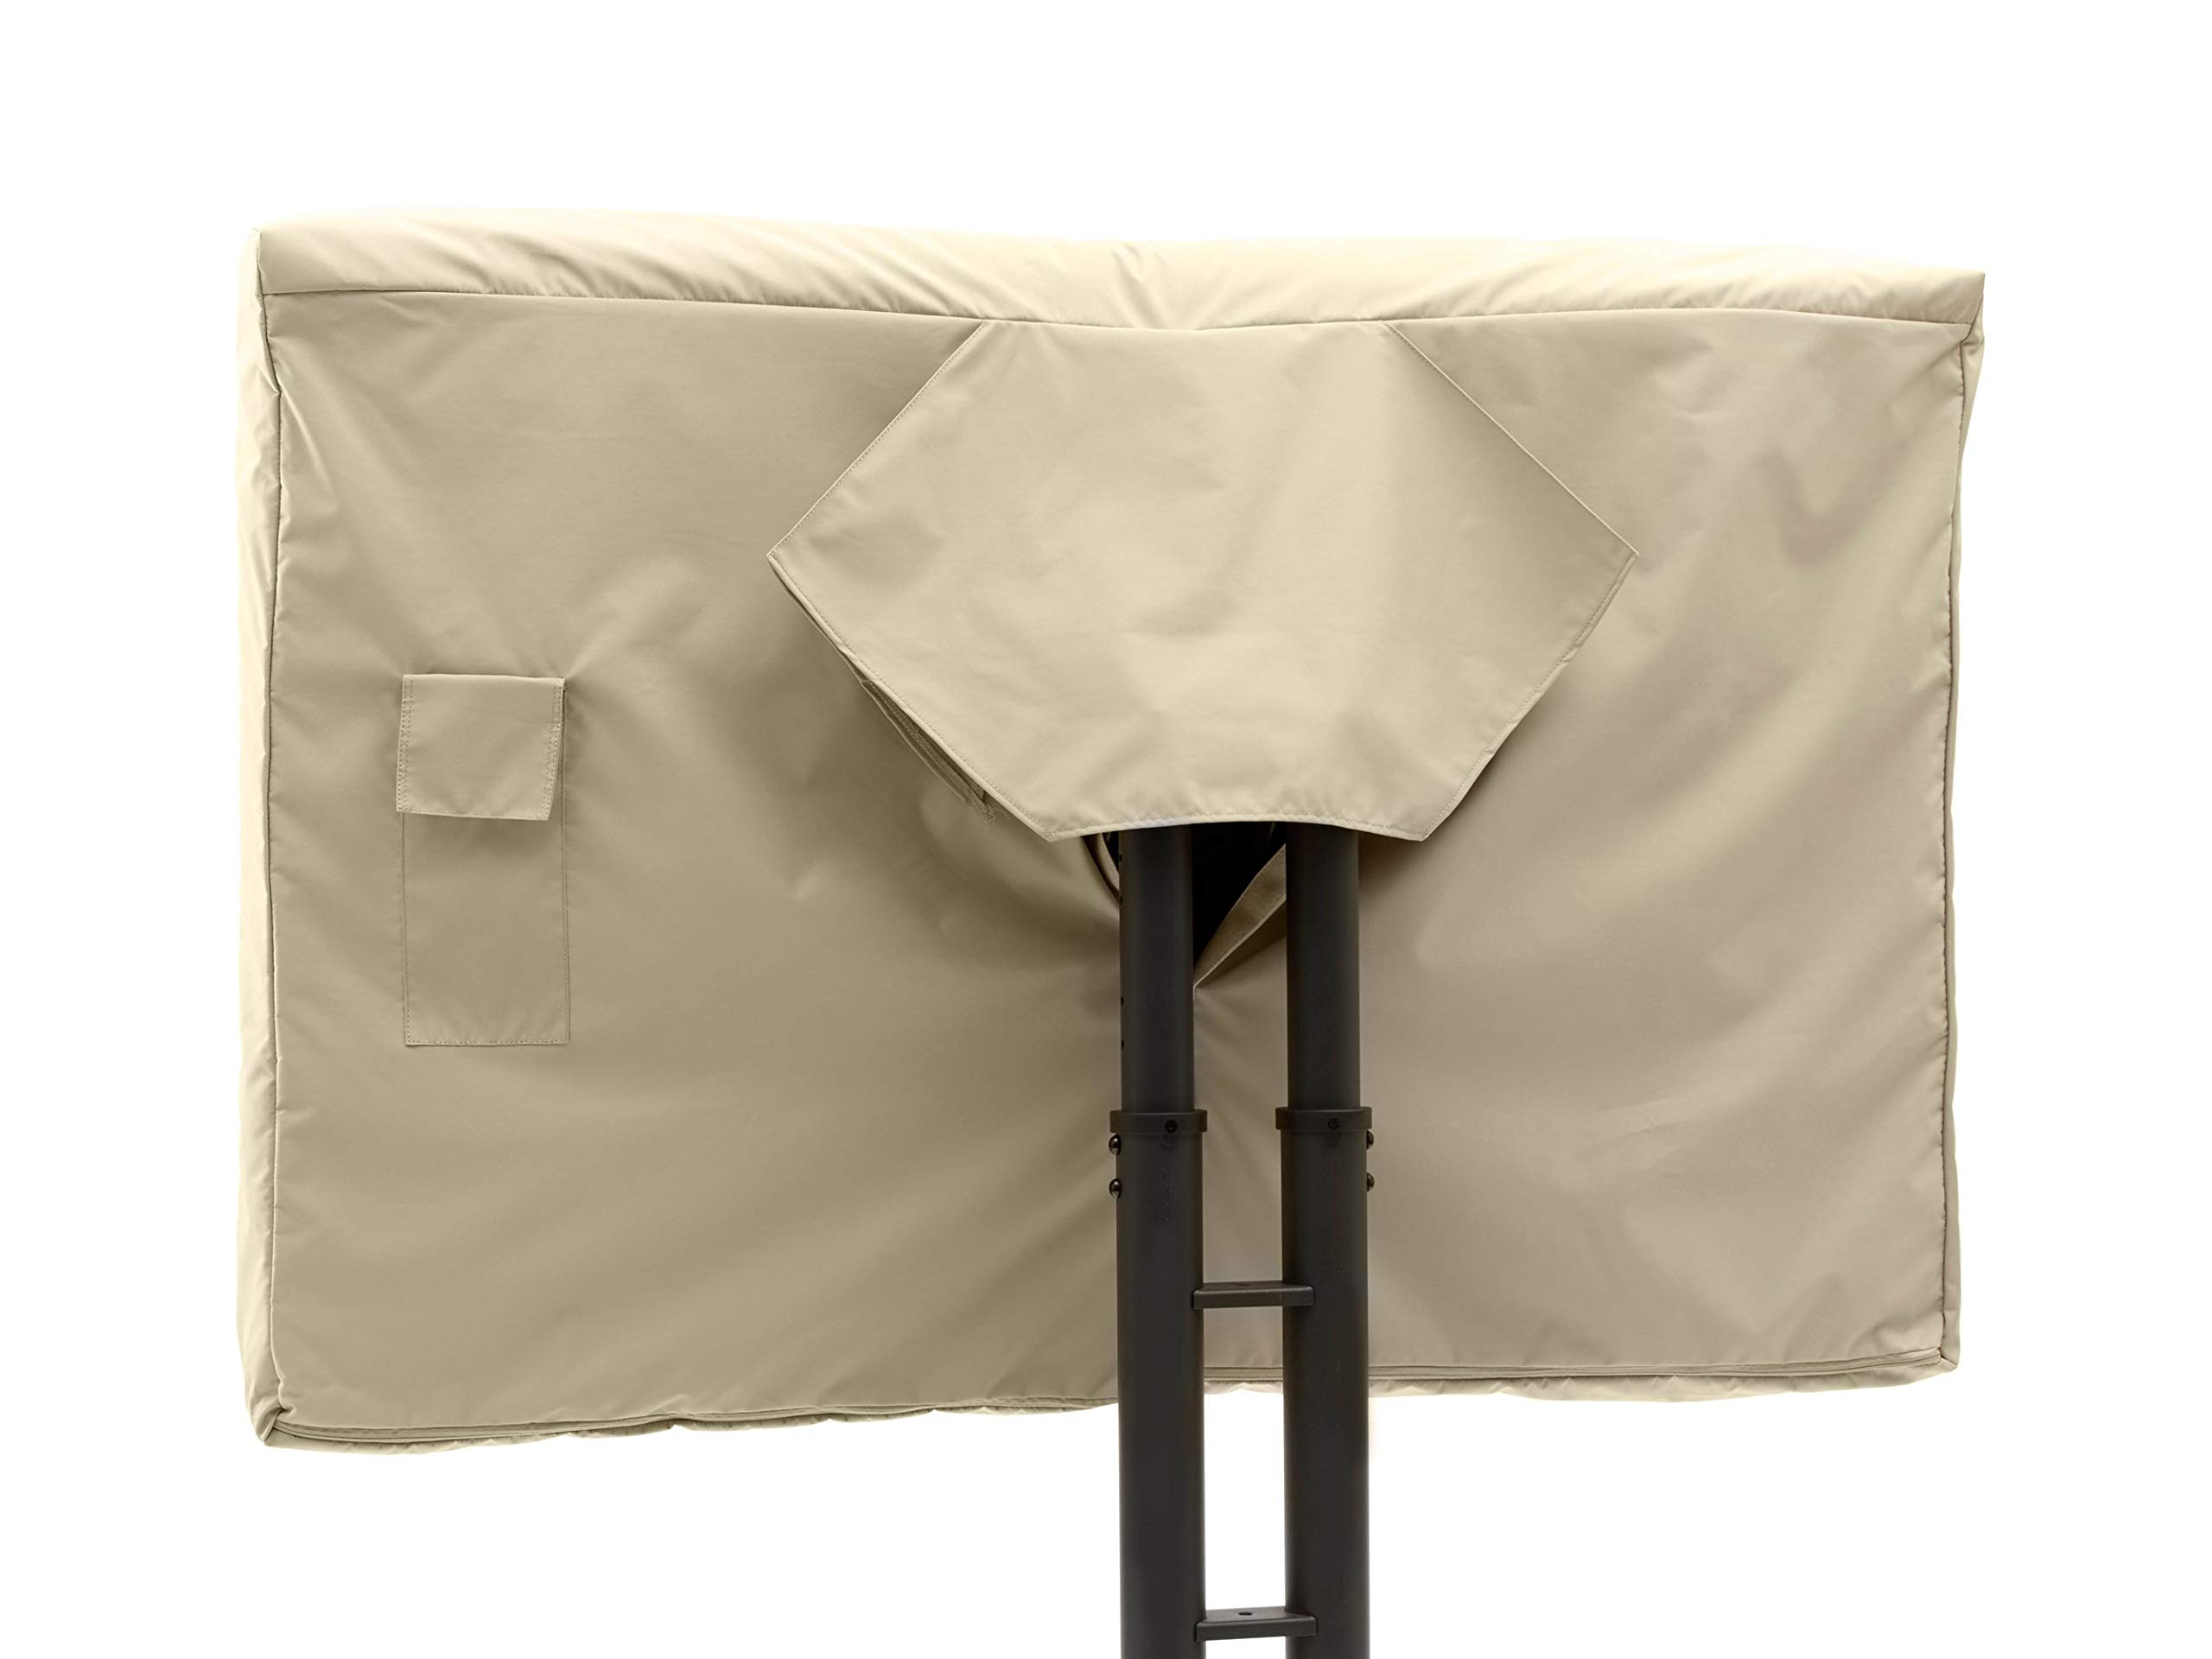 Covermates - Outdoor TV Cover - Fits 22 to 25 Inch TV's - Elite - 300 Denier Stock-Dyed Polyester - Full Coverage - Front Interior Fleece Lining - 3 YR Warranty - Water Resistant - Khaki by Covermates